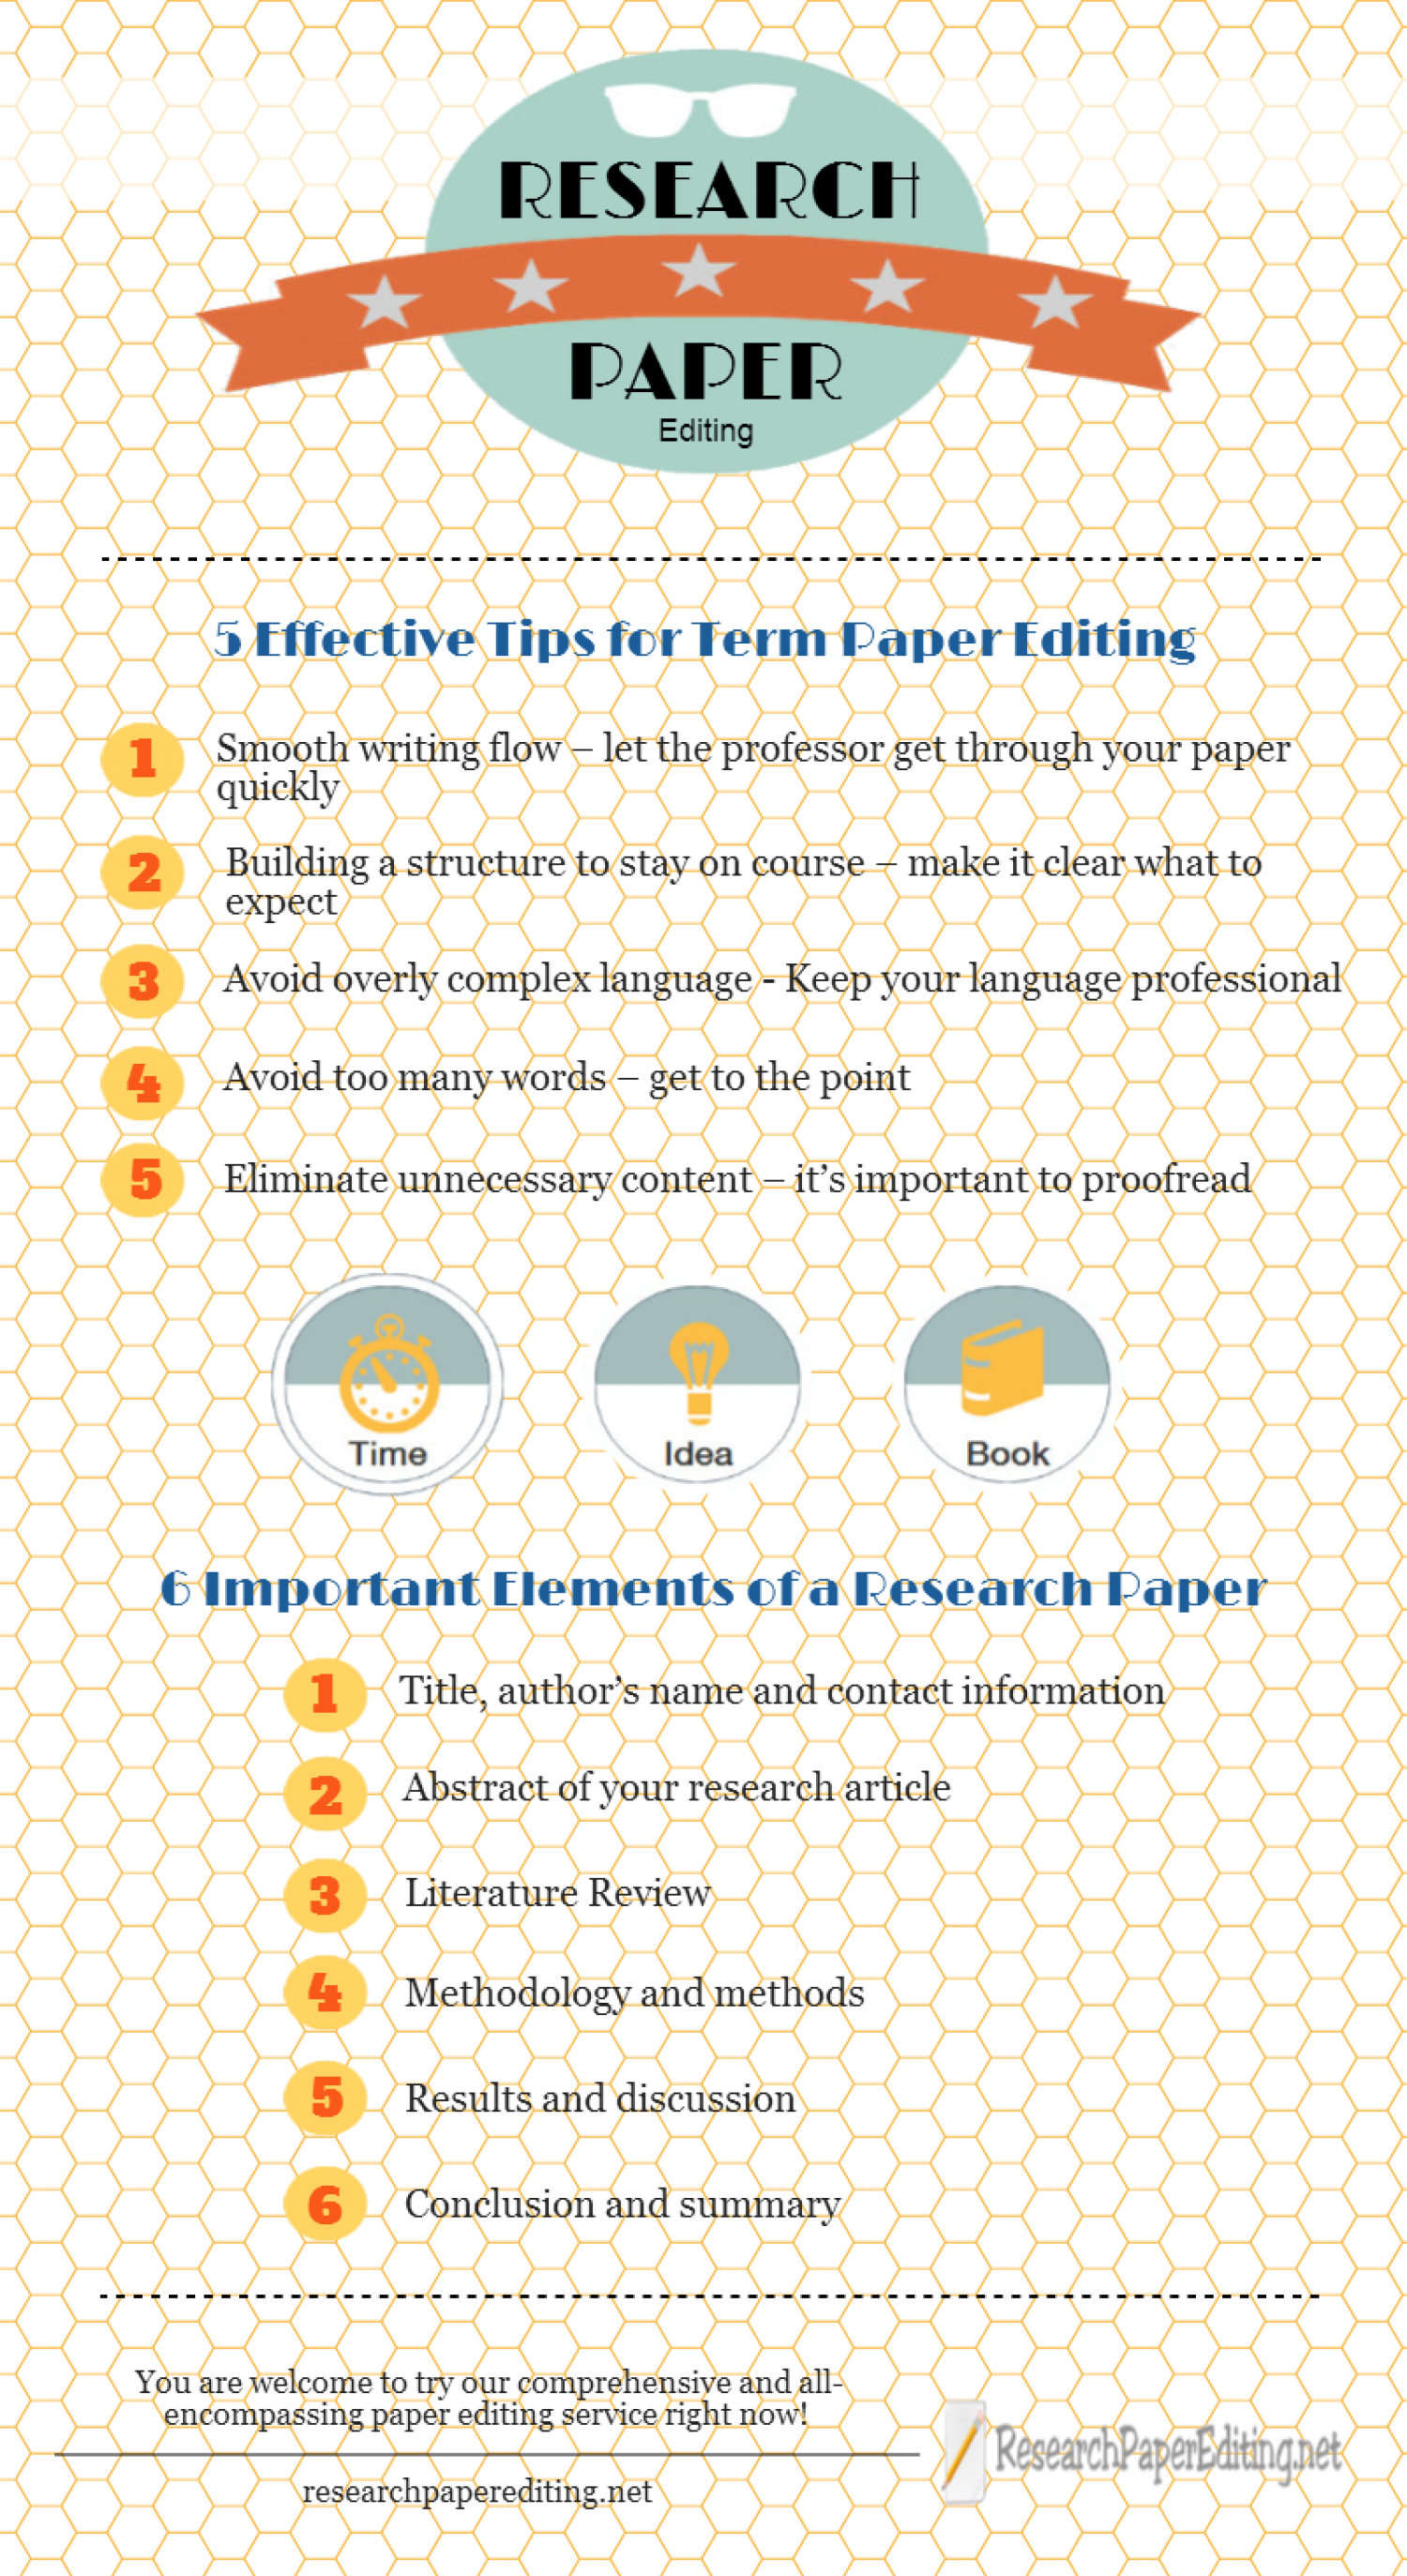 Professional Help with Research Paper Editing